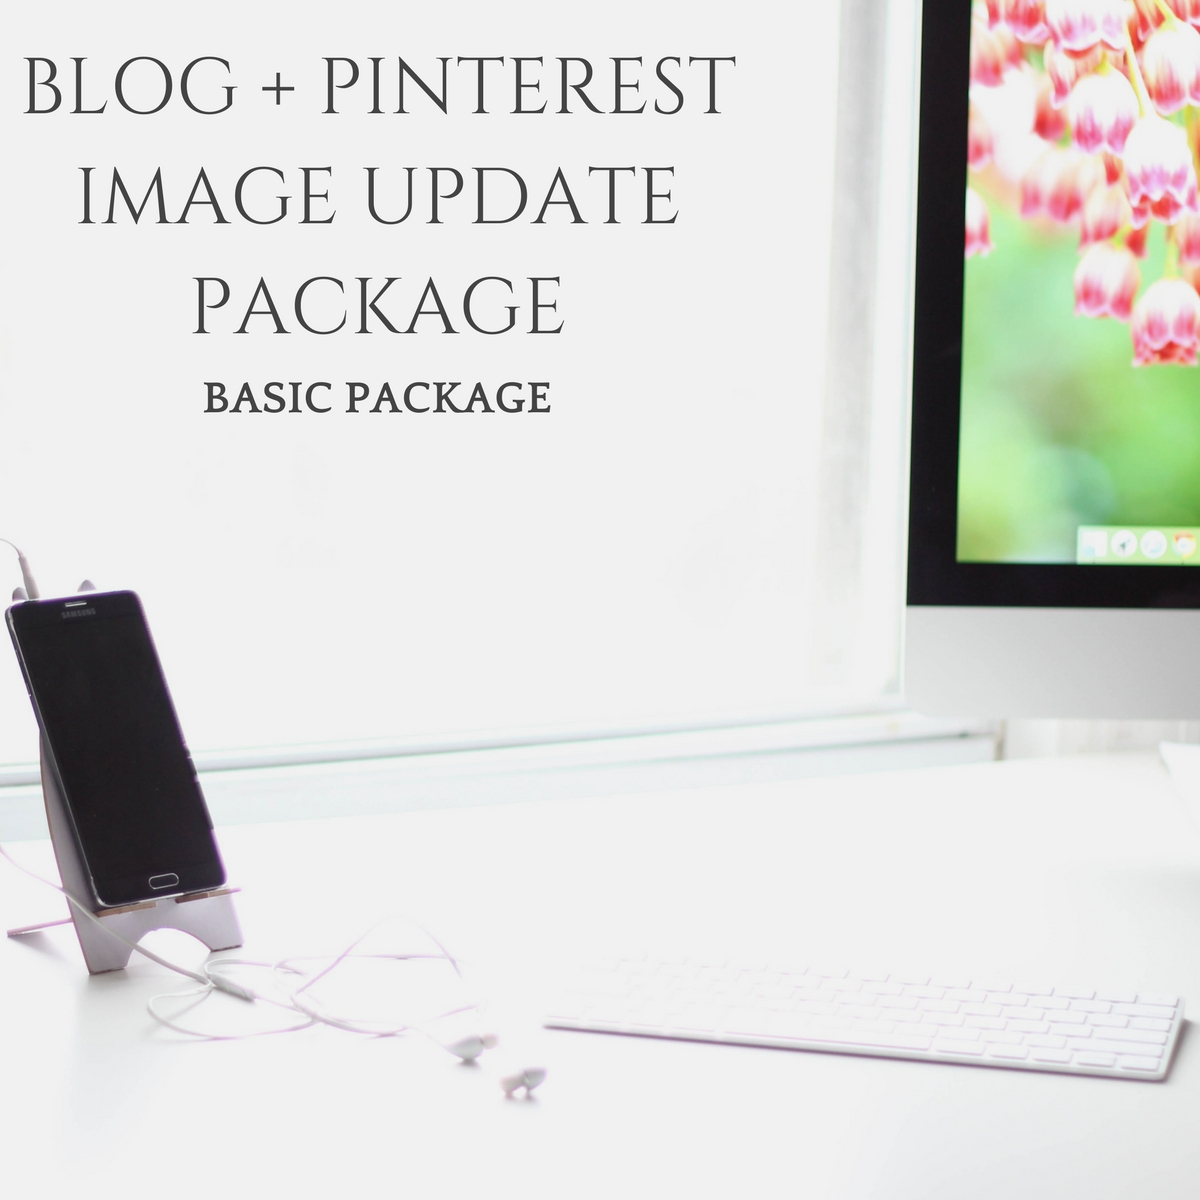 BLOG + PINTEREST IMAGE UPDATES - BASIC PACKAGE